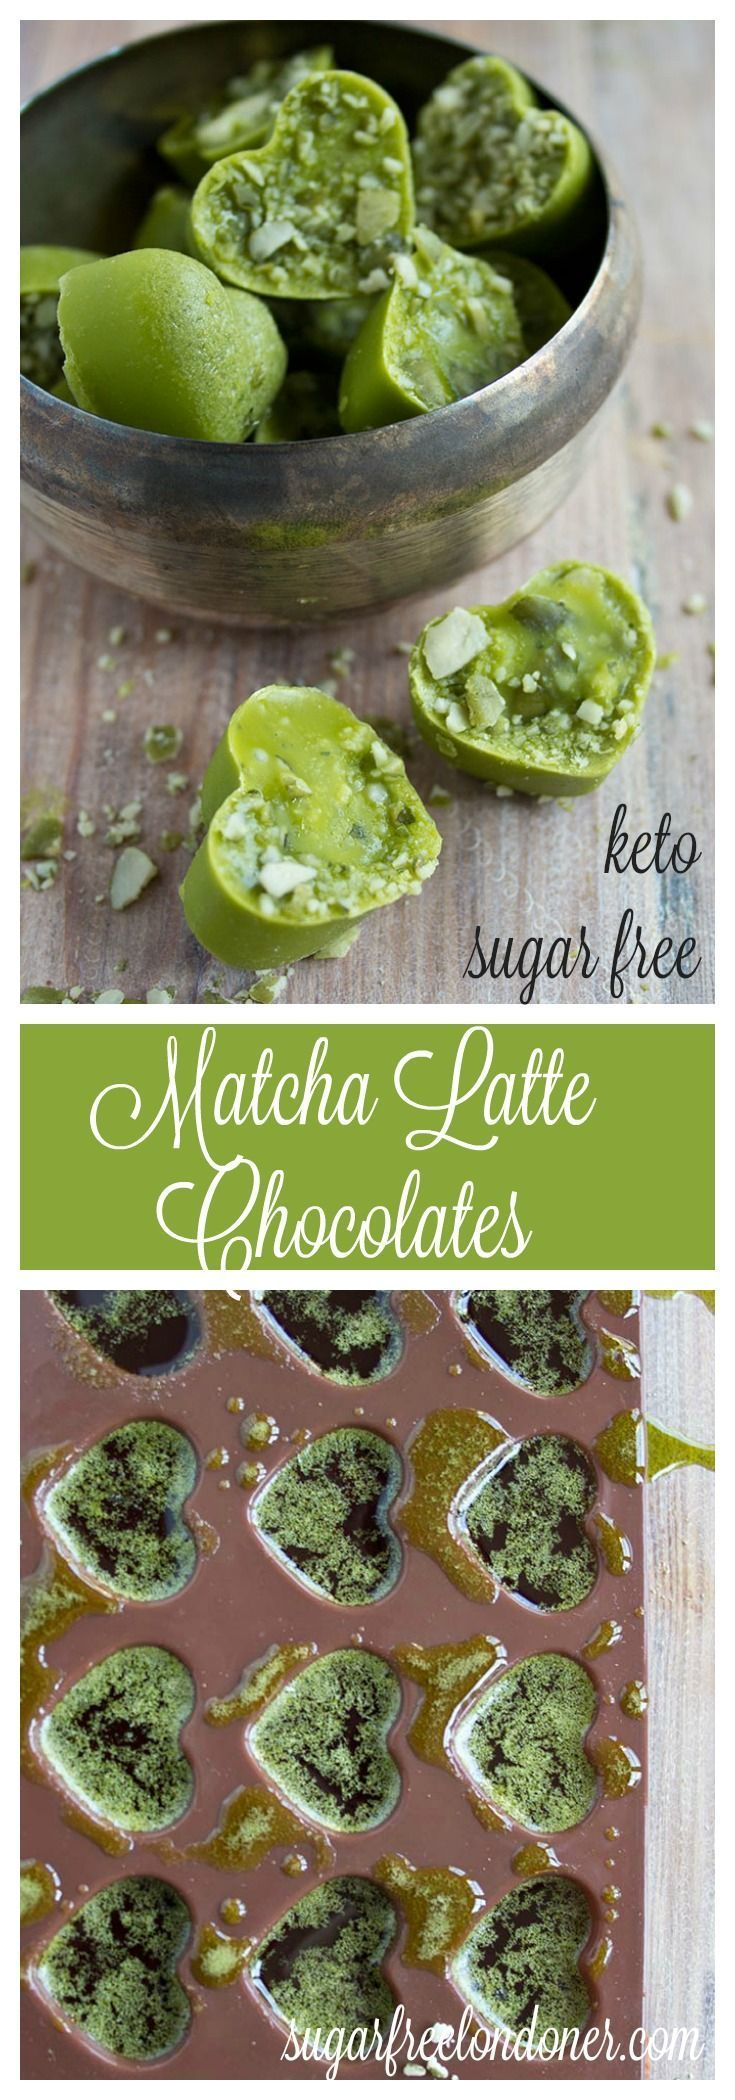 a delicious and easy keto treat that is bursting with